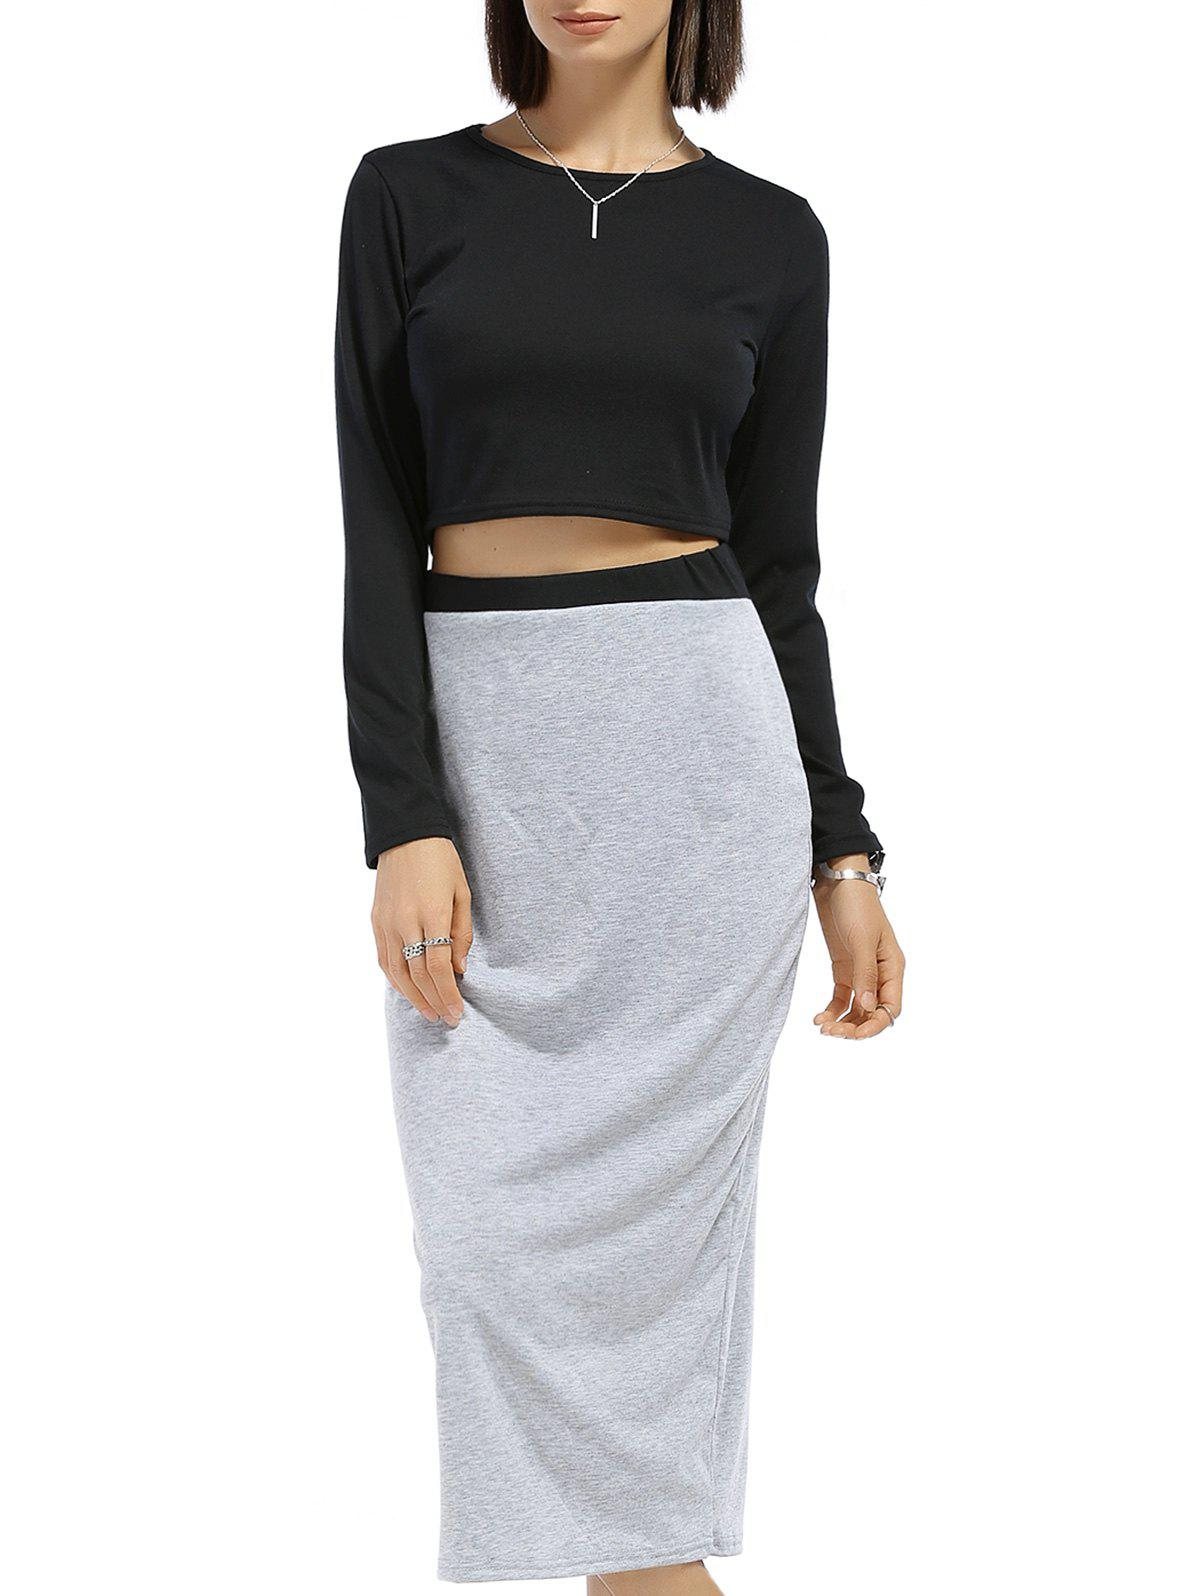 Chic Long Sleeve Round Neck Solid Color Crop Top + Spliced Skirt Women's Twinset 119227002